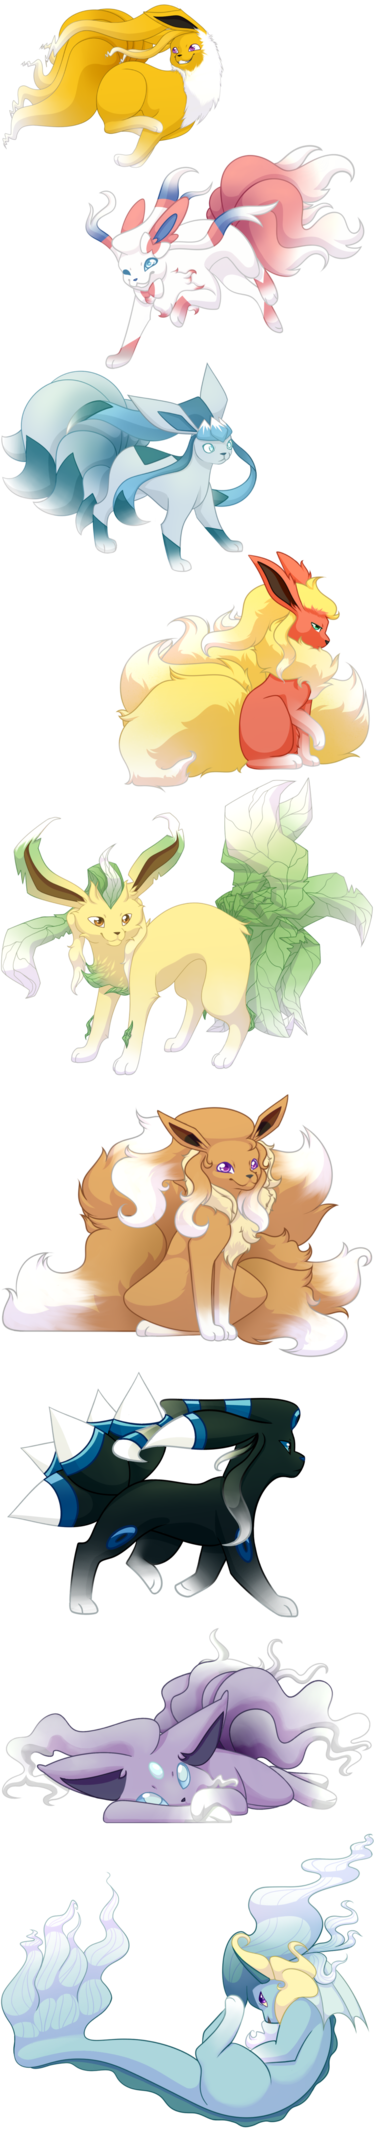 Pokemon Fusion Commission by Griz-The-Ambear